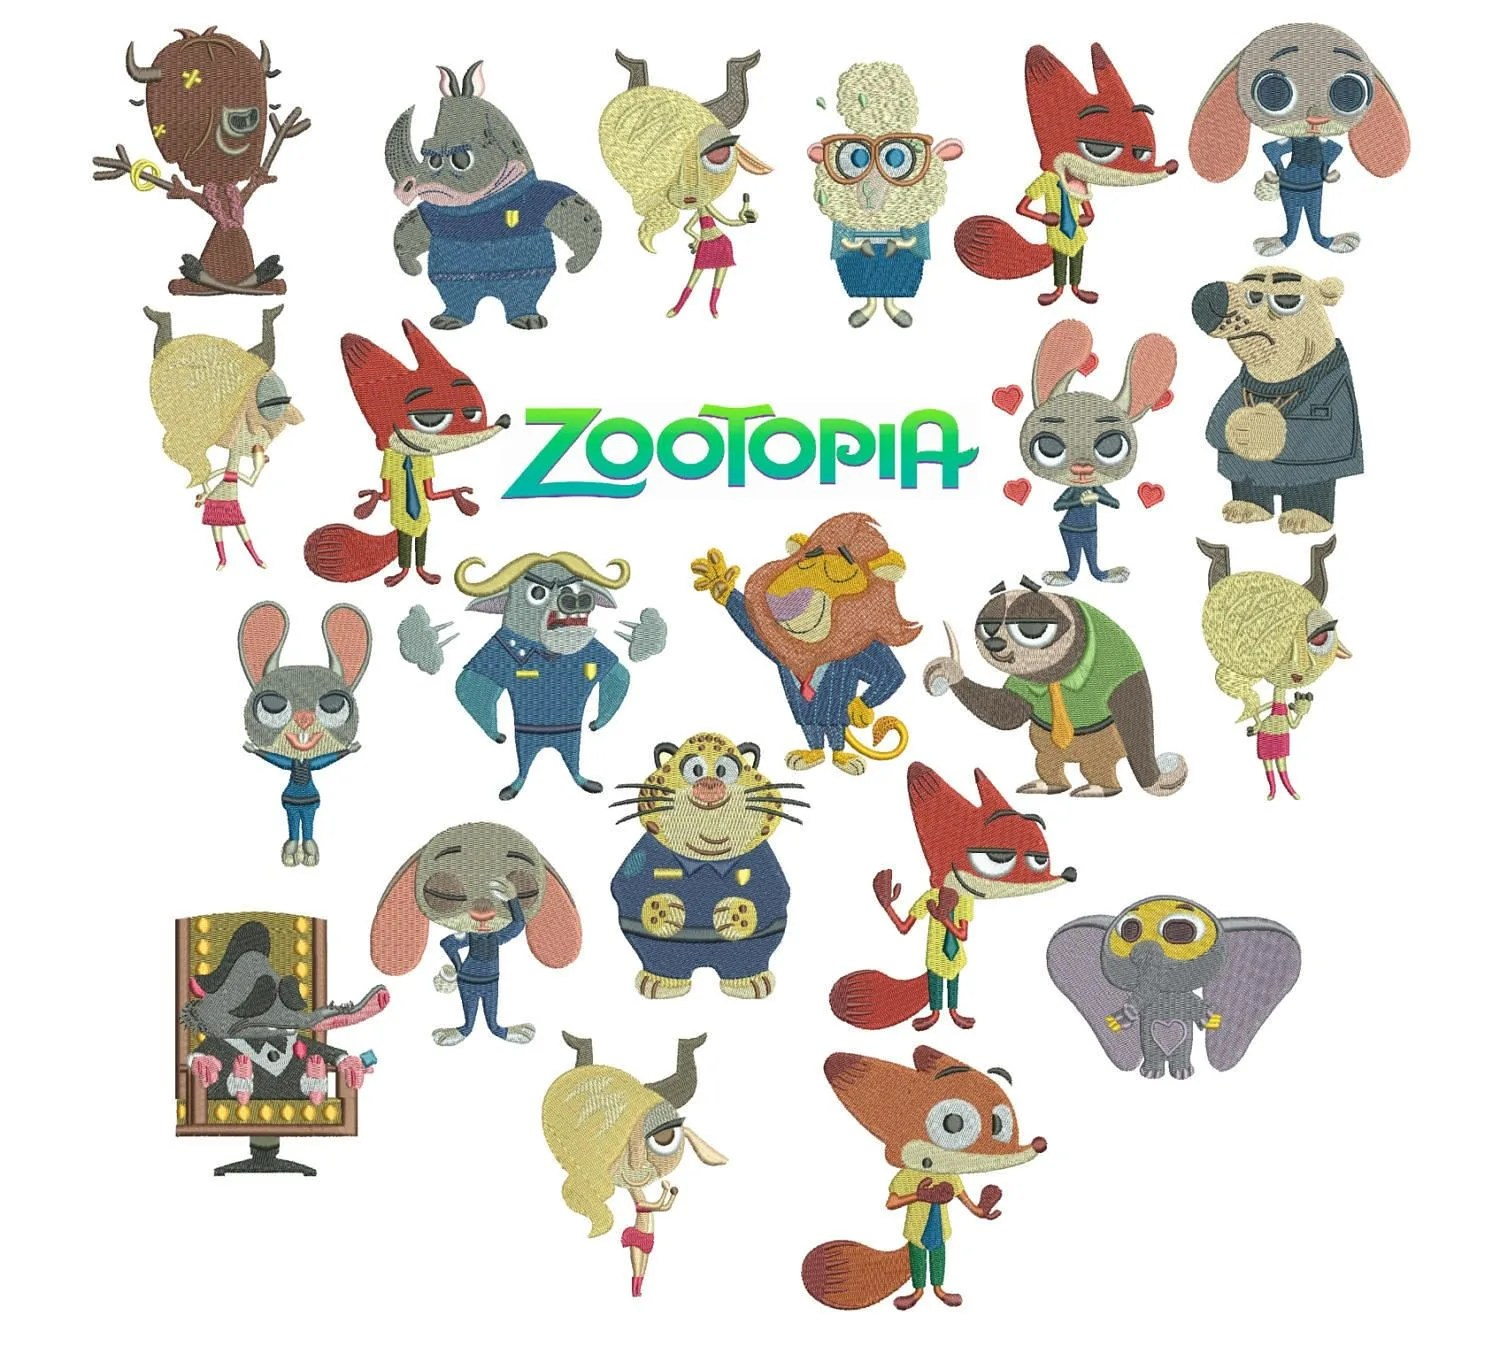 75 Off Zootopia Machine Embroidery Designs For 4x4in Hoop